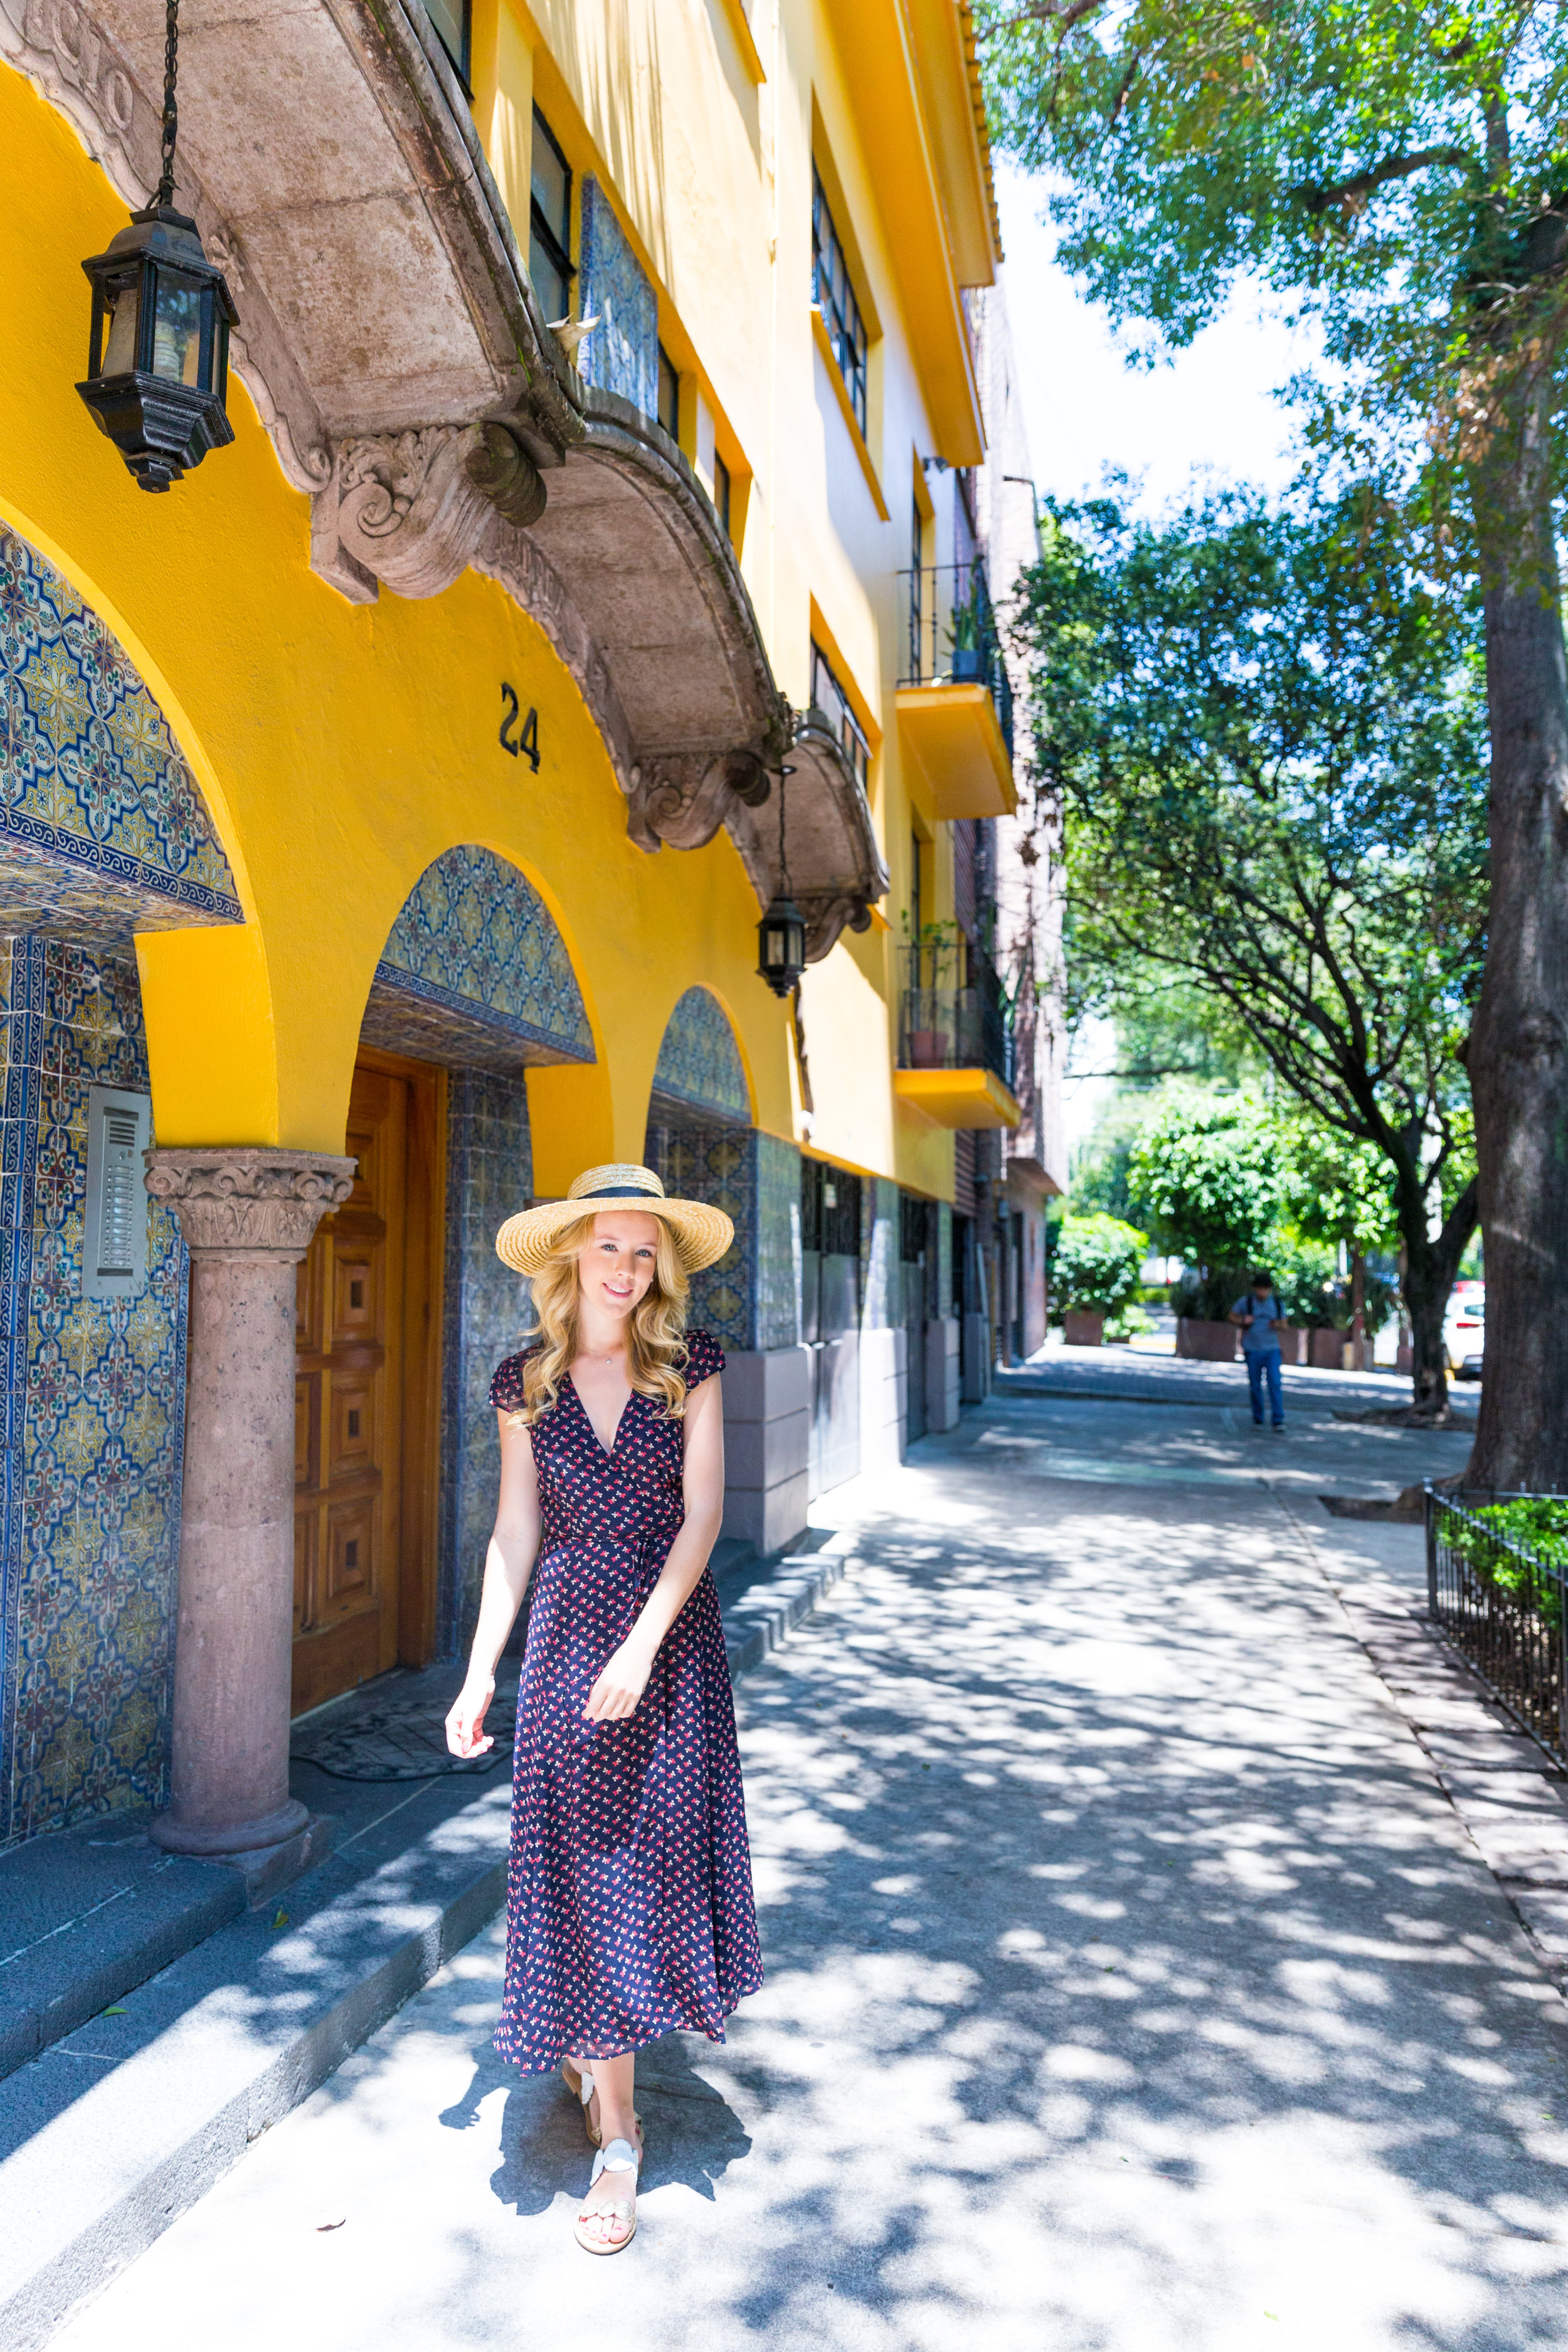 Mexico City Centro Historico Summer Outfit Pattern Wrap Dress_-13.jpg